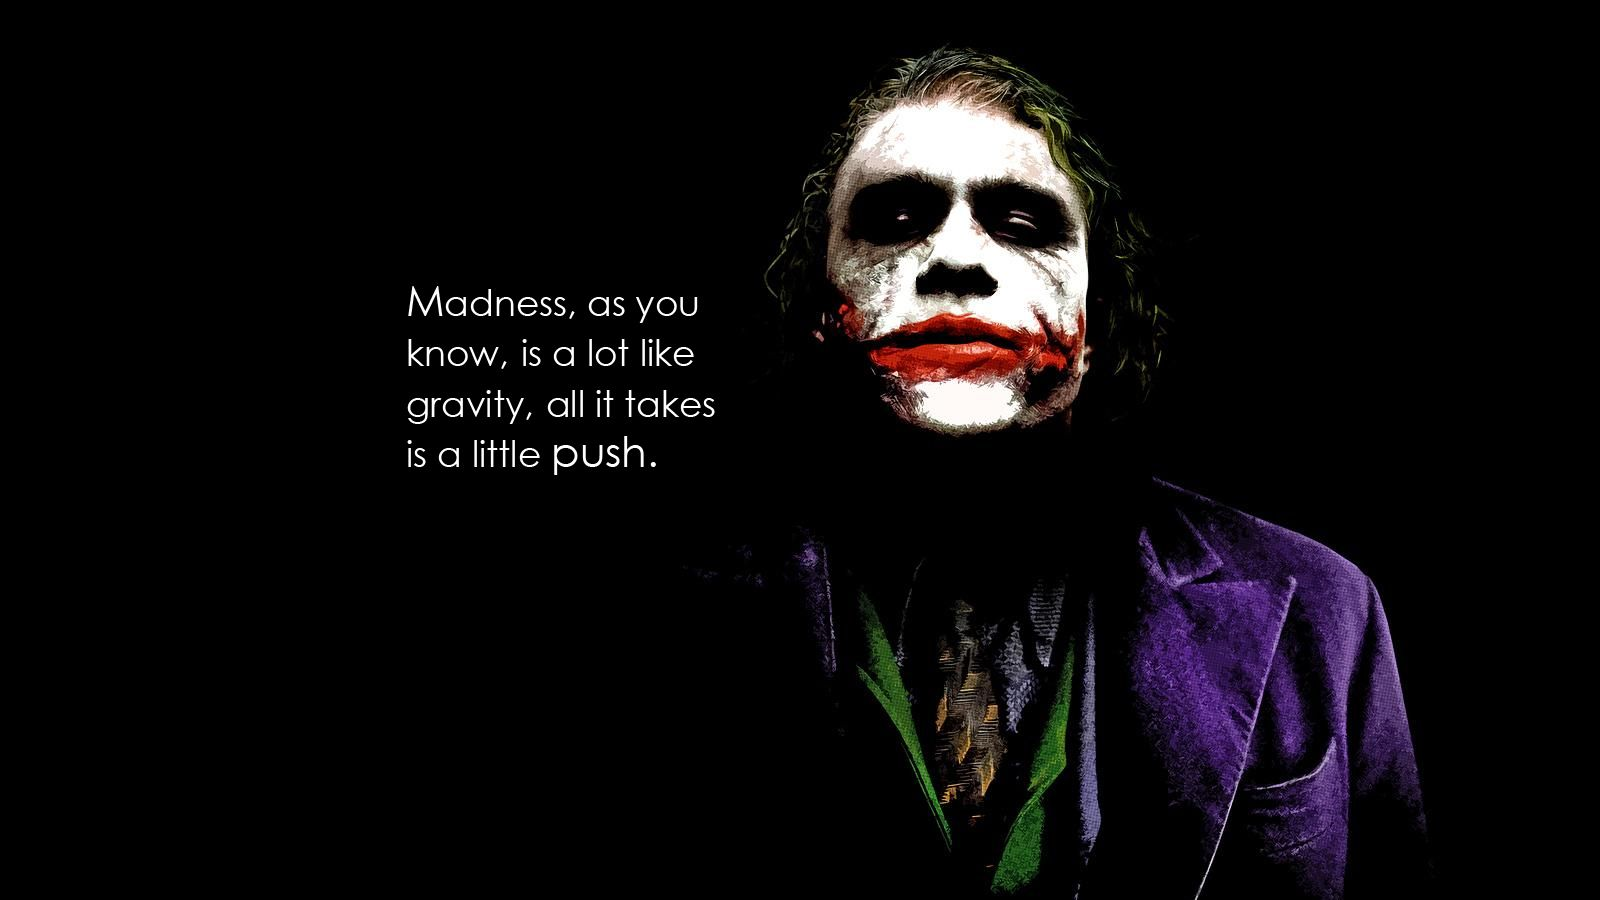 Batman And Joker Wallpapers Wallpaper Cave Joker Quotes